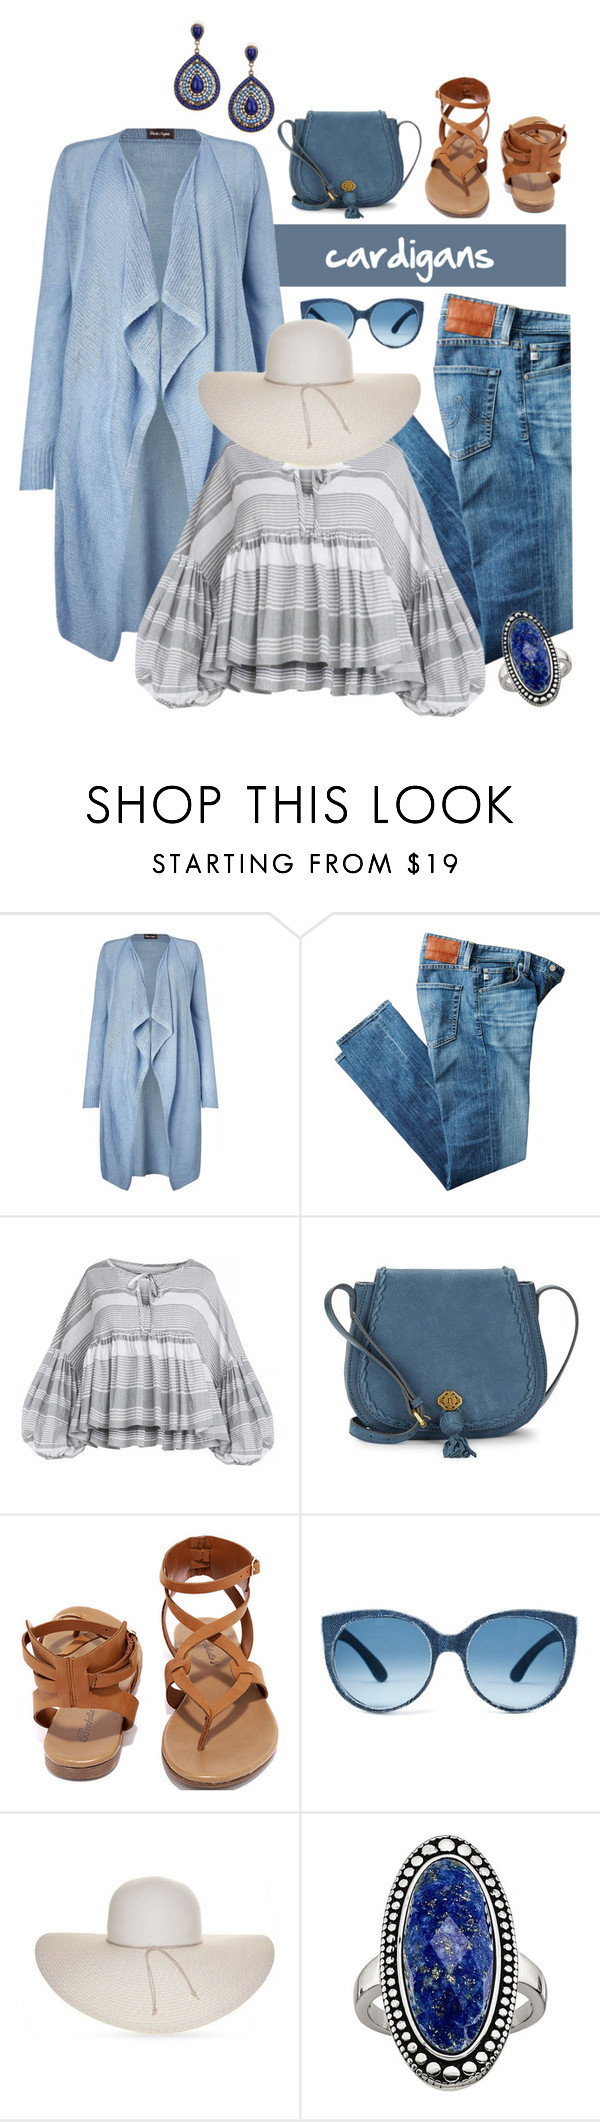 """""""Untitled #3429"""" by kellie-debrandt-mescher ❤ liked on Polyvore featuring Phase Eight, AG Adriano Goldschmied, Nanette Lepore, Breckelle's and Nine West"""